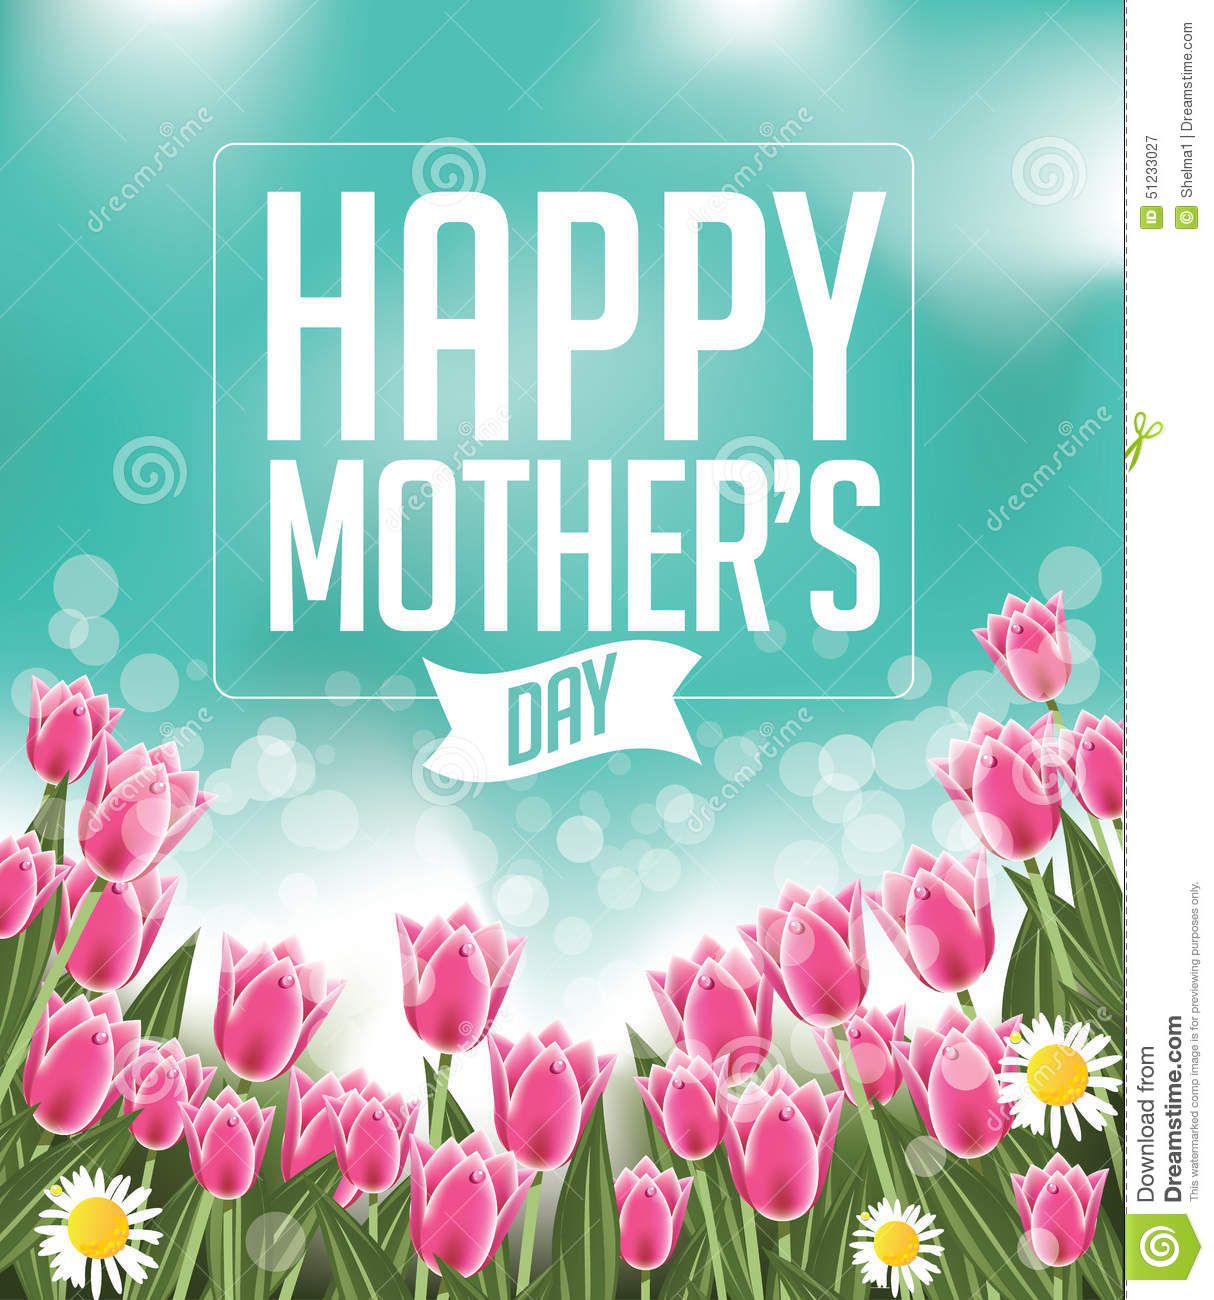 I Love You Mom Happy Mothers Day Flyer Template Psd Free: Happy Mothers Day Tulips Design EPS 10 Vector Stock Vector